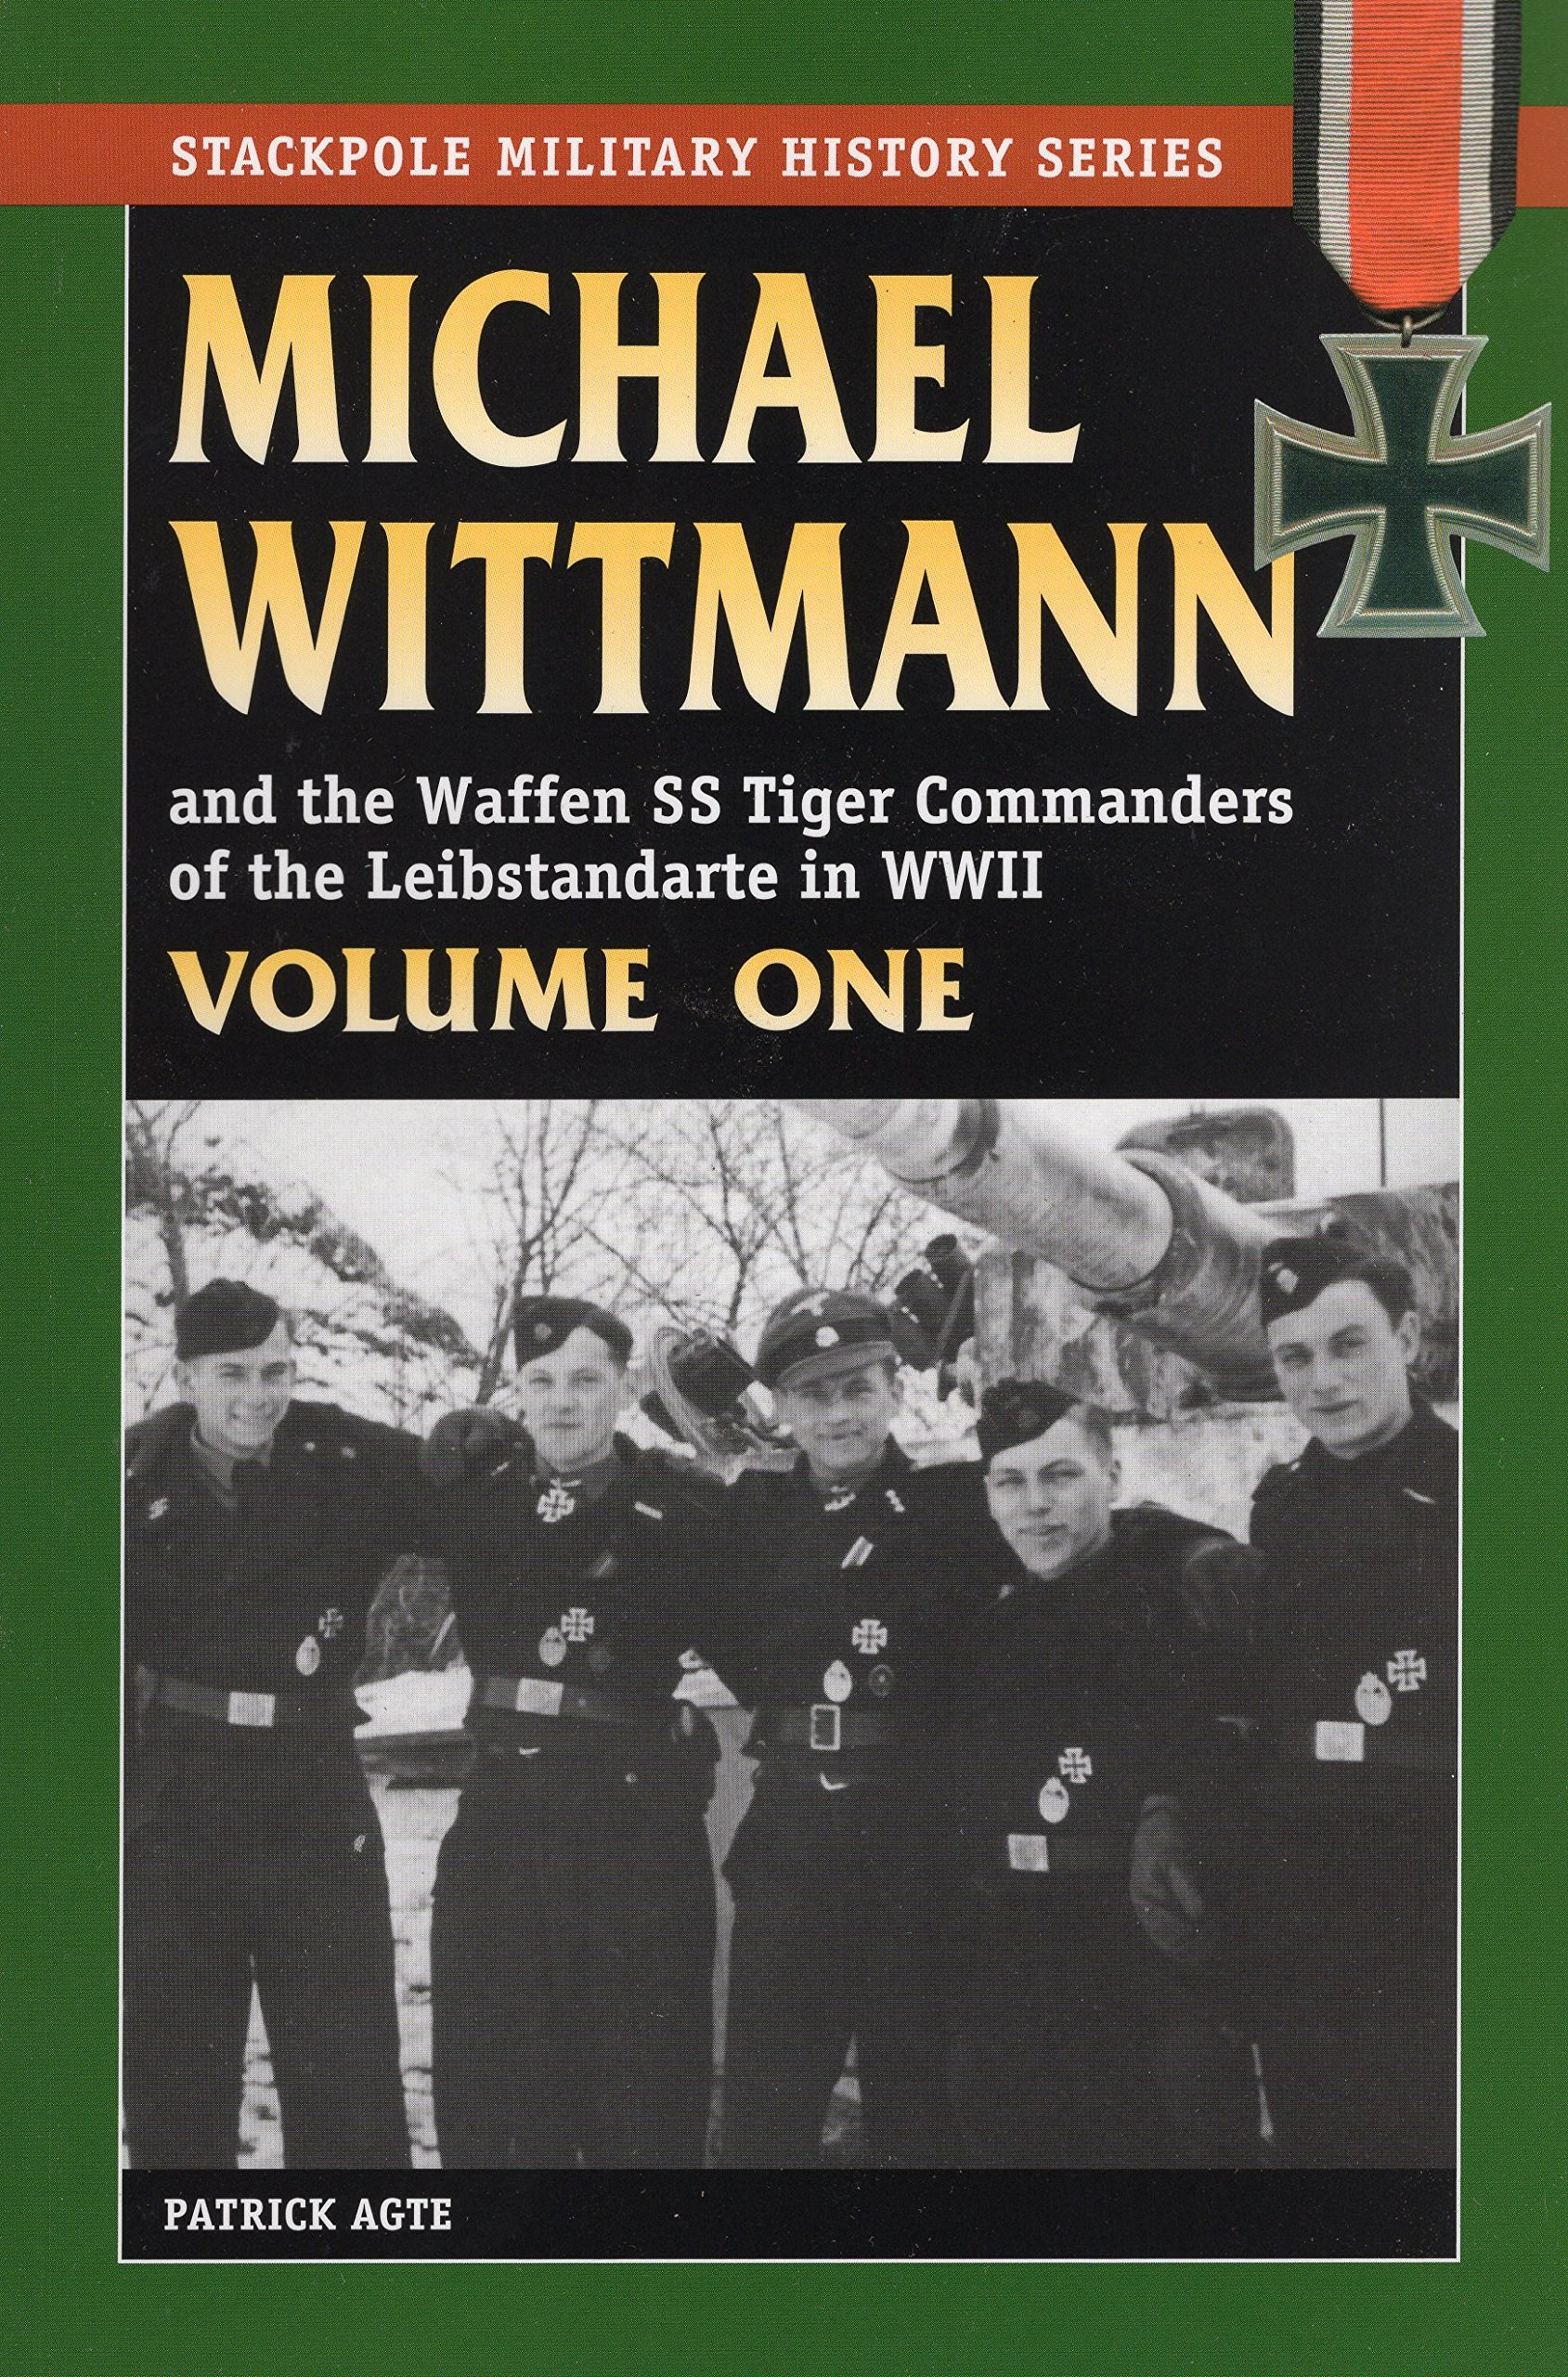 MICHAEL WITTMANN AND THE WAFFEN SS TIGER COMMANDERS OF THE LEIBSTANDARTE IN WWII, Vol. 1 (Stackpole Military History) ebook